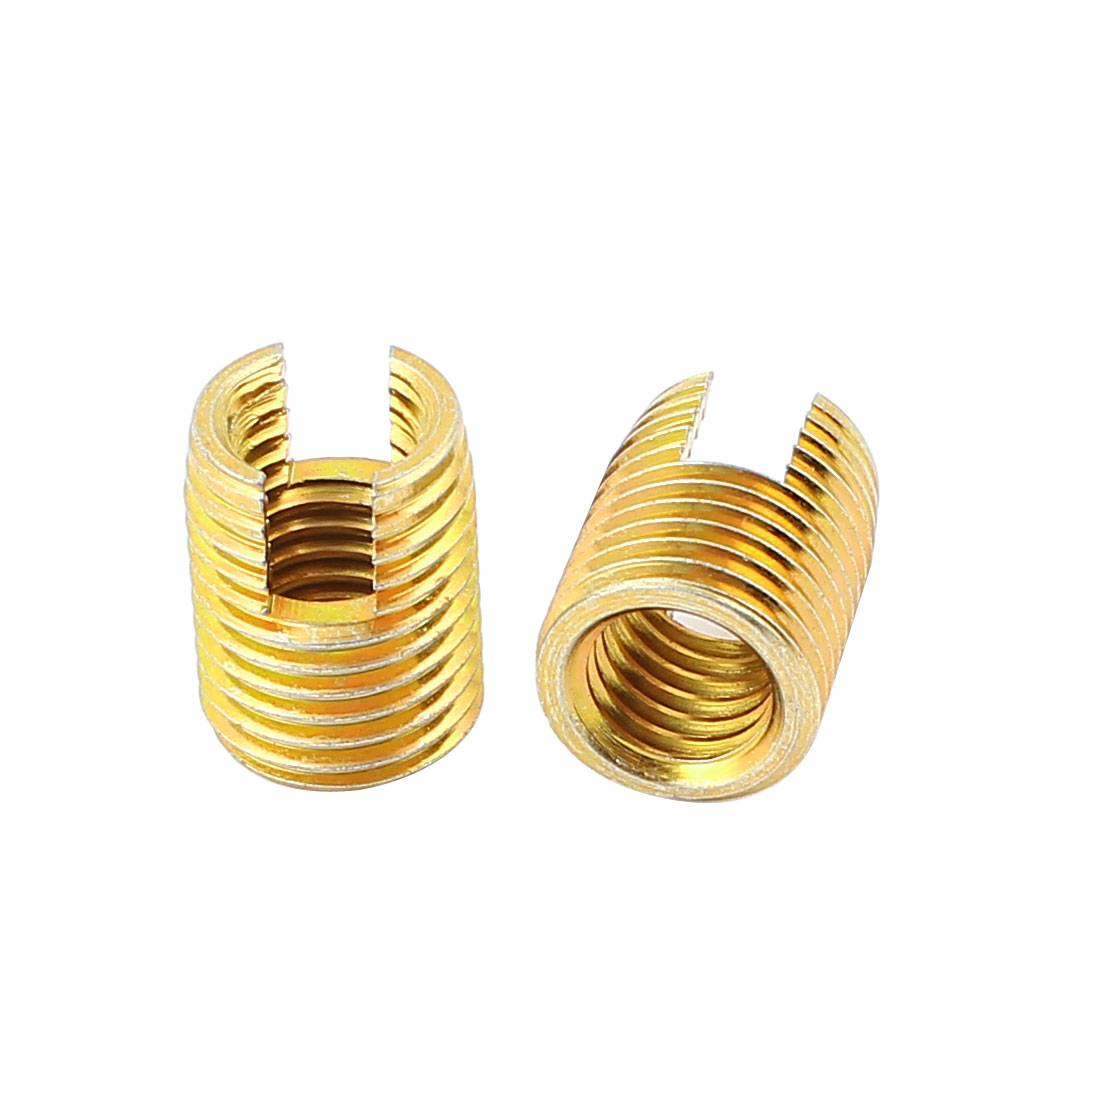 18mm x 14mm Mechanical Self Tapping Threaded Inserts Brass Tone 2 Pcs